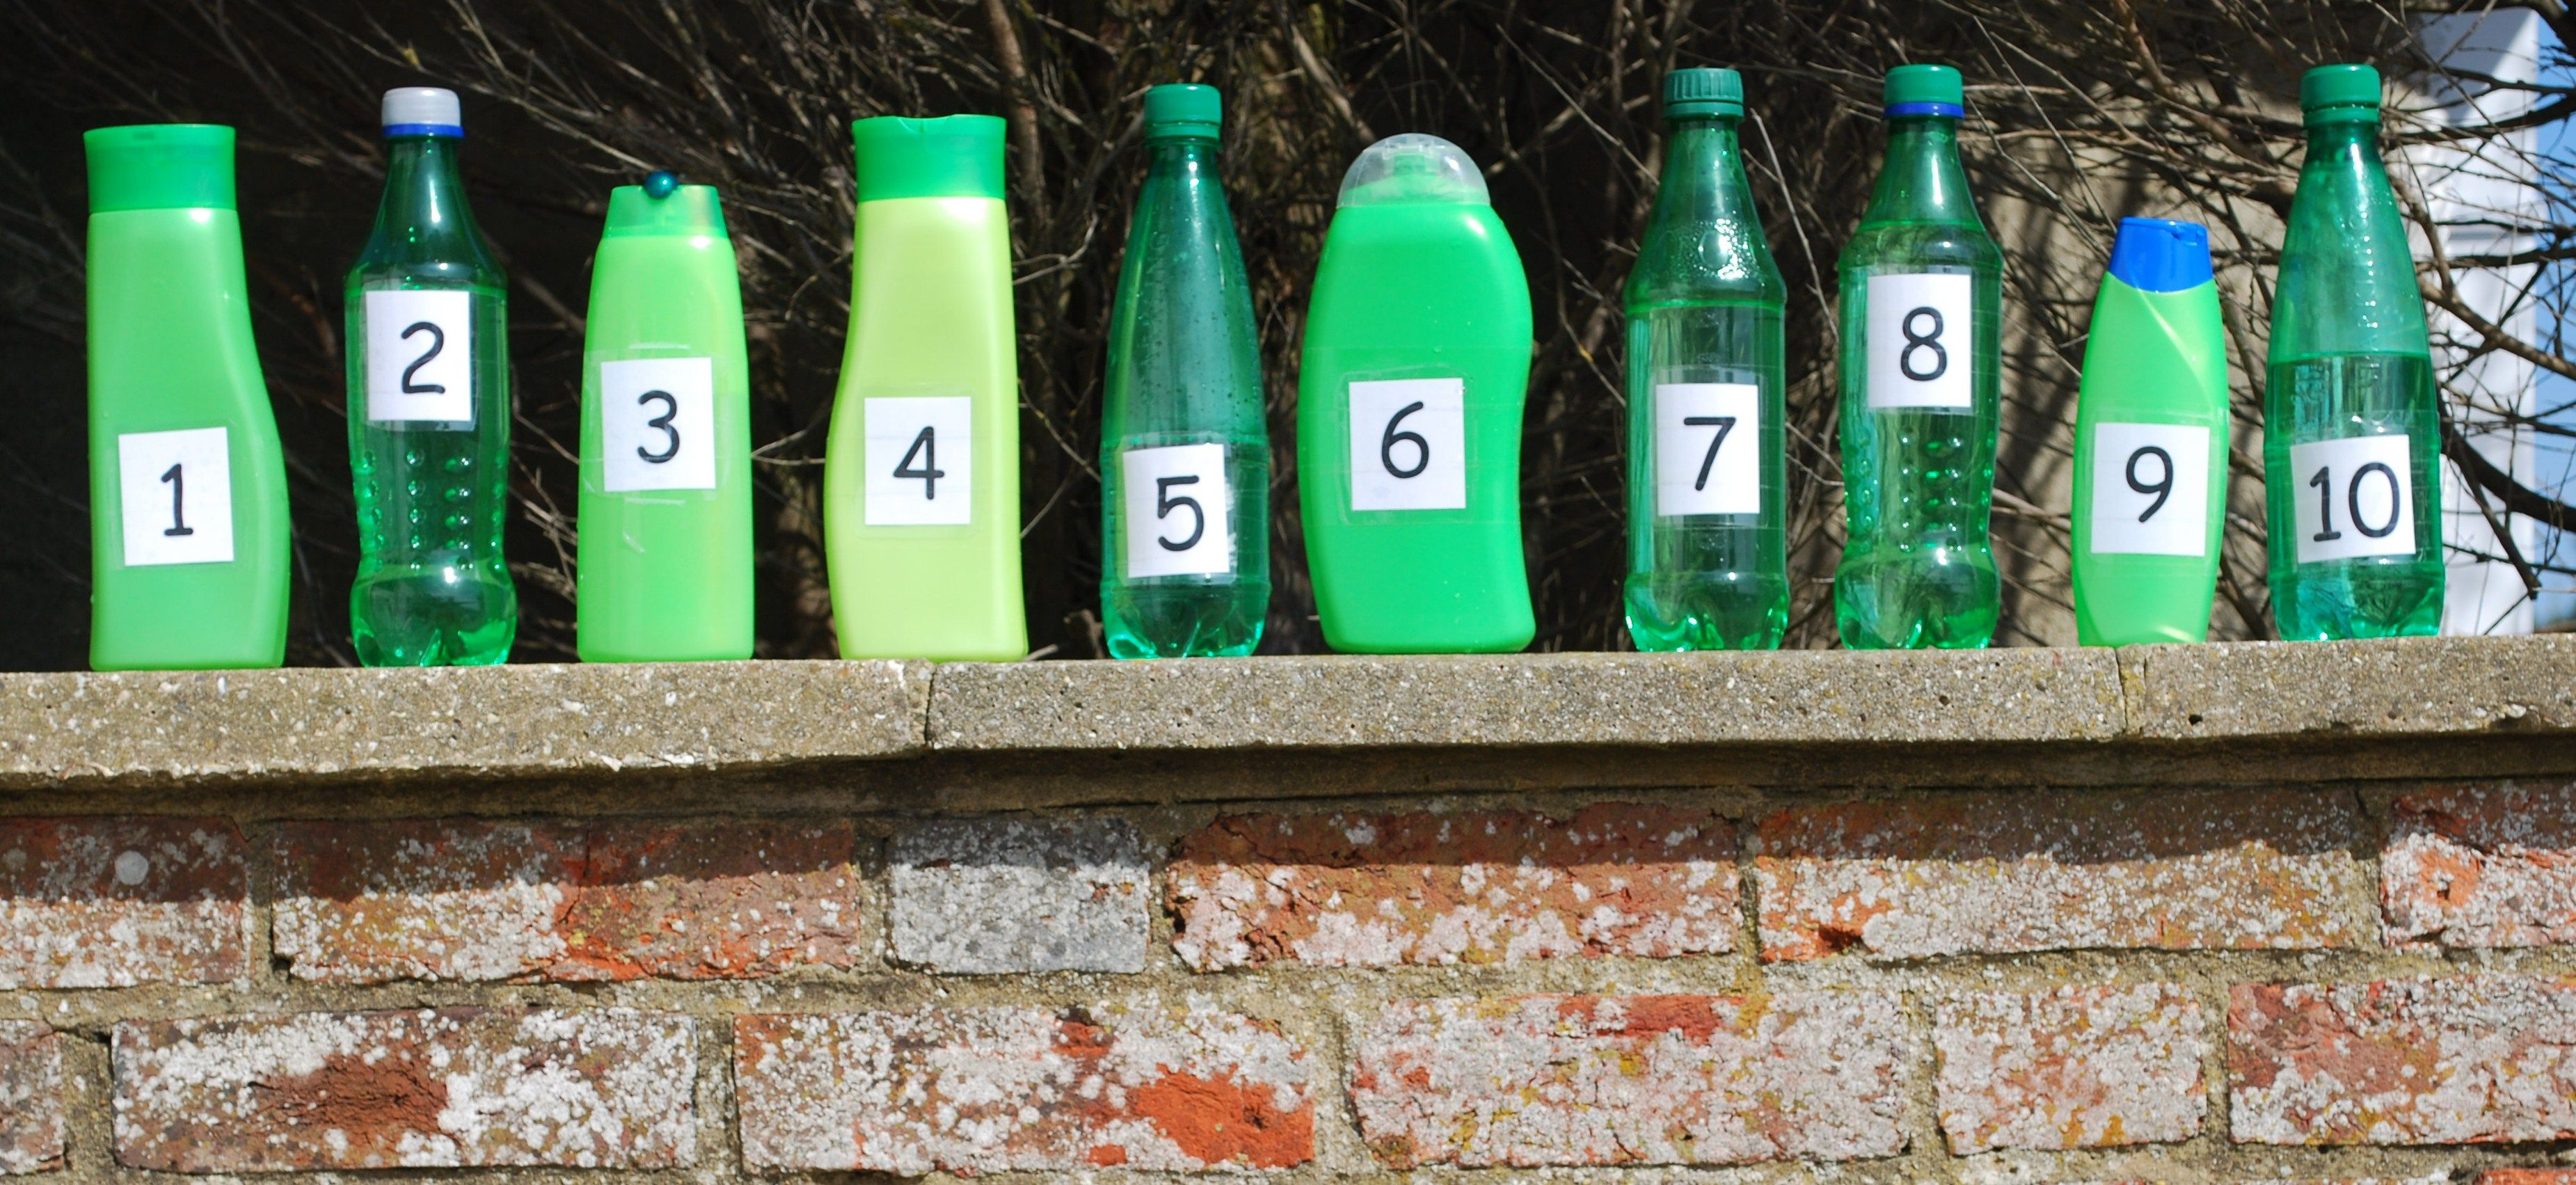 Ten Green Bottles Early Years Counting And Singing